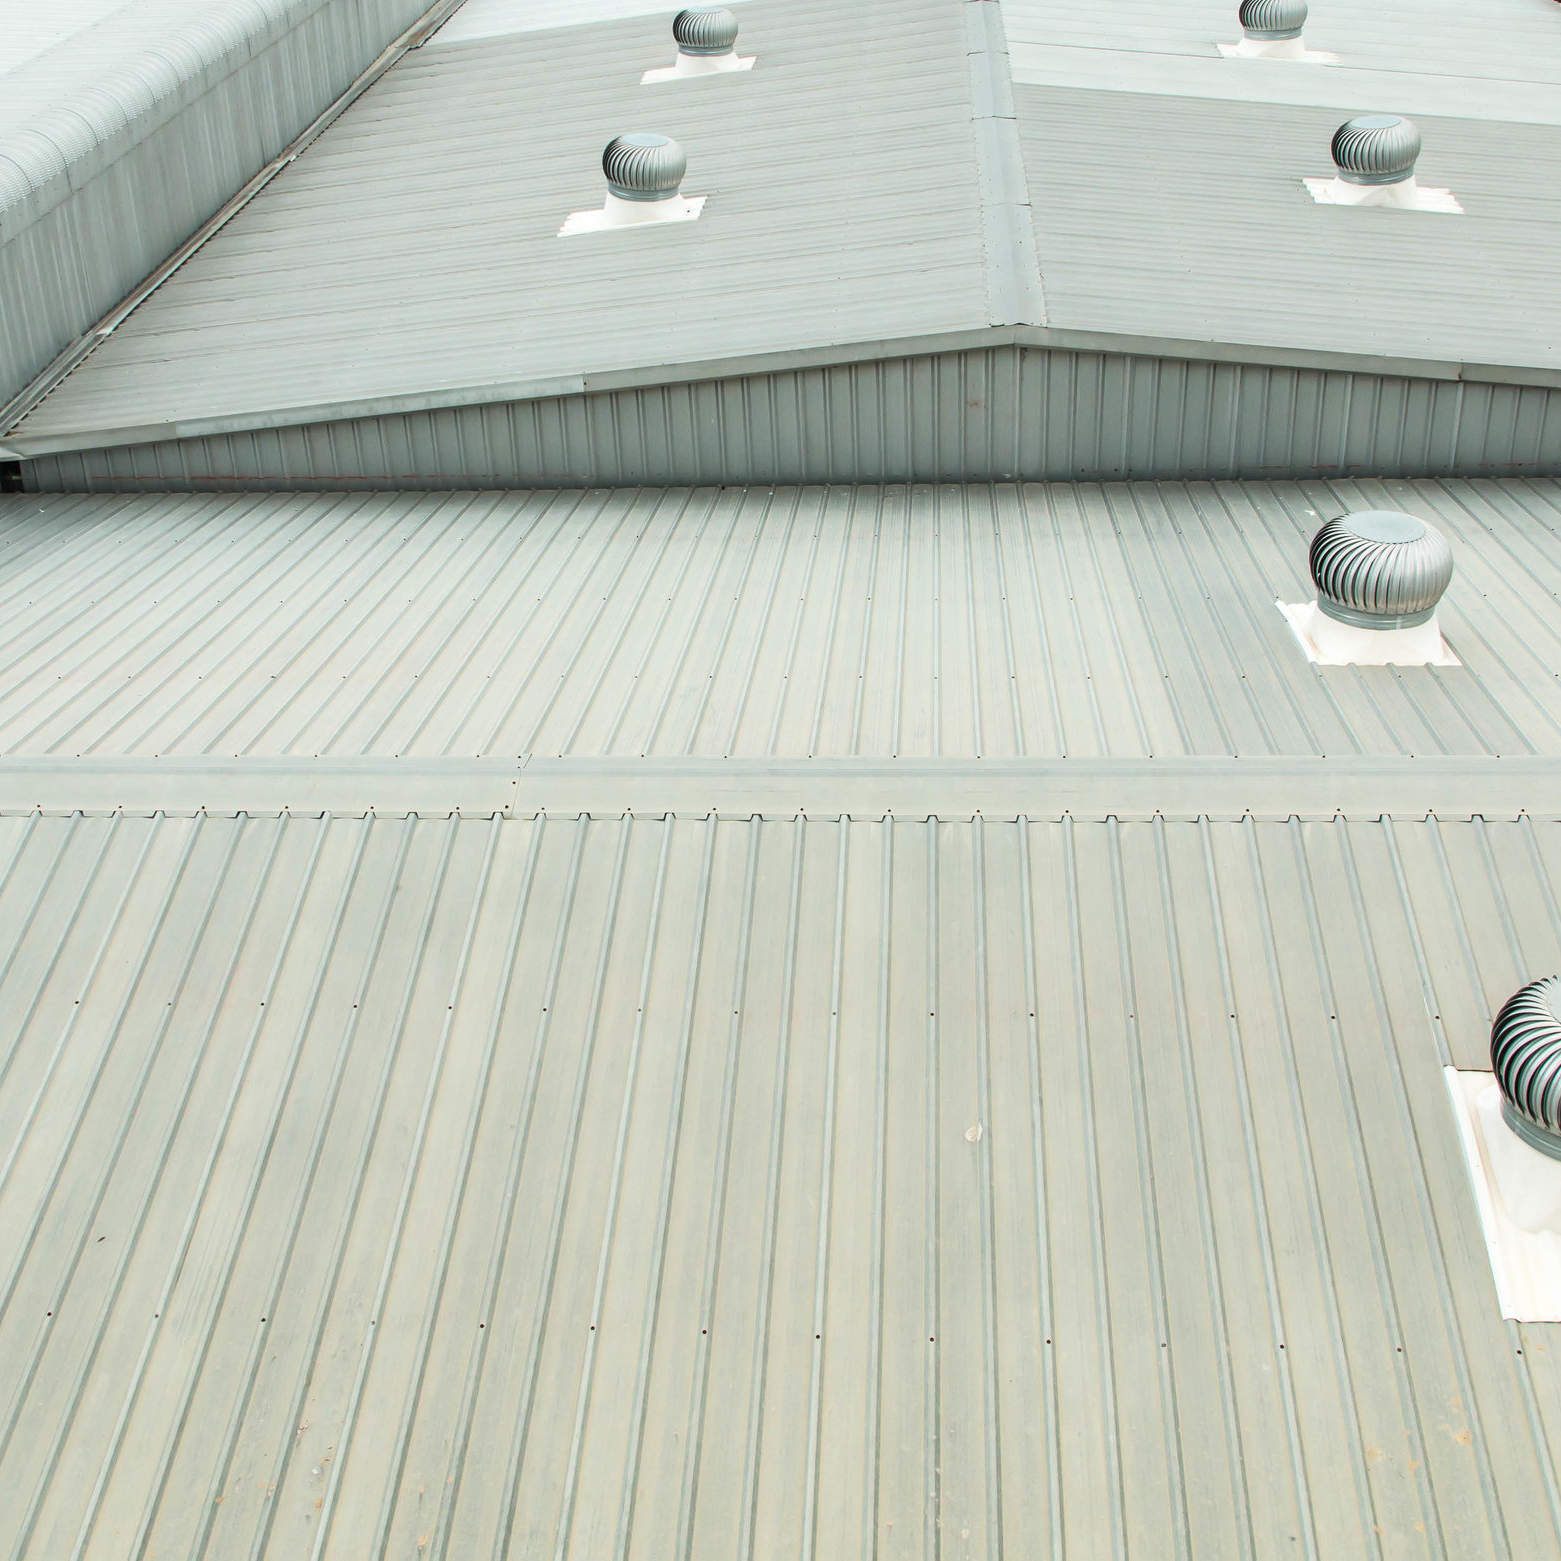 An industrial roof